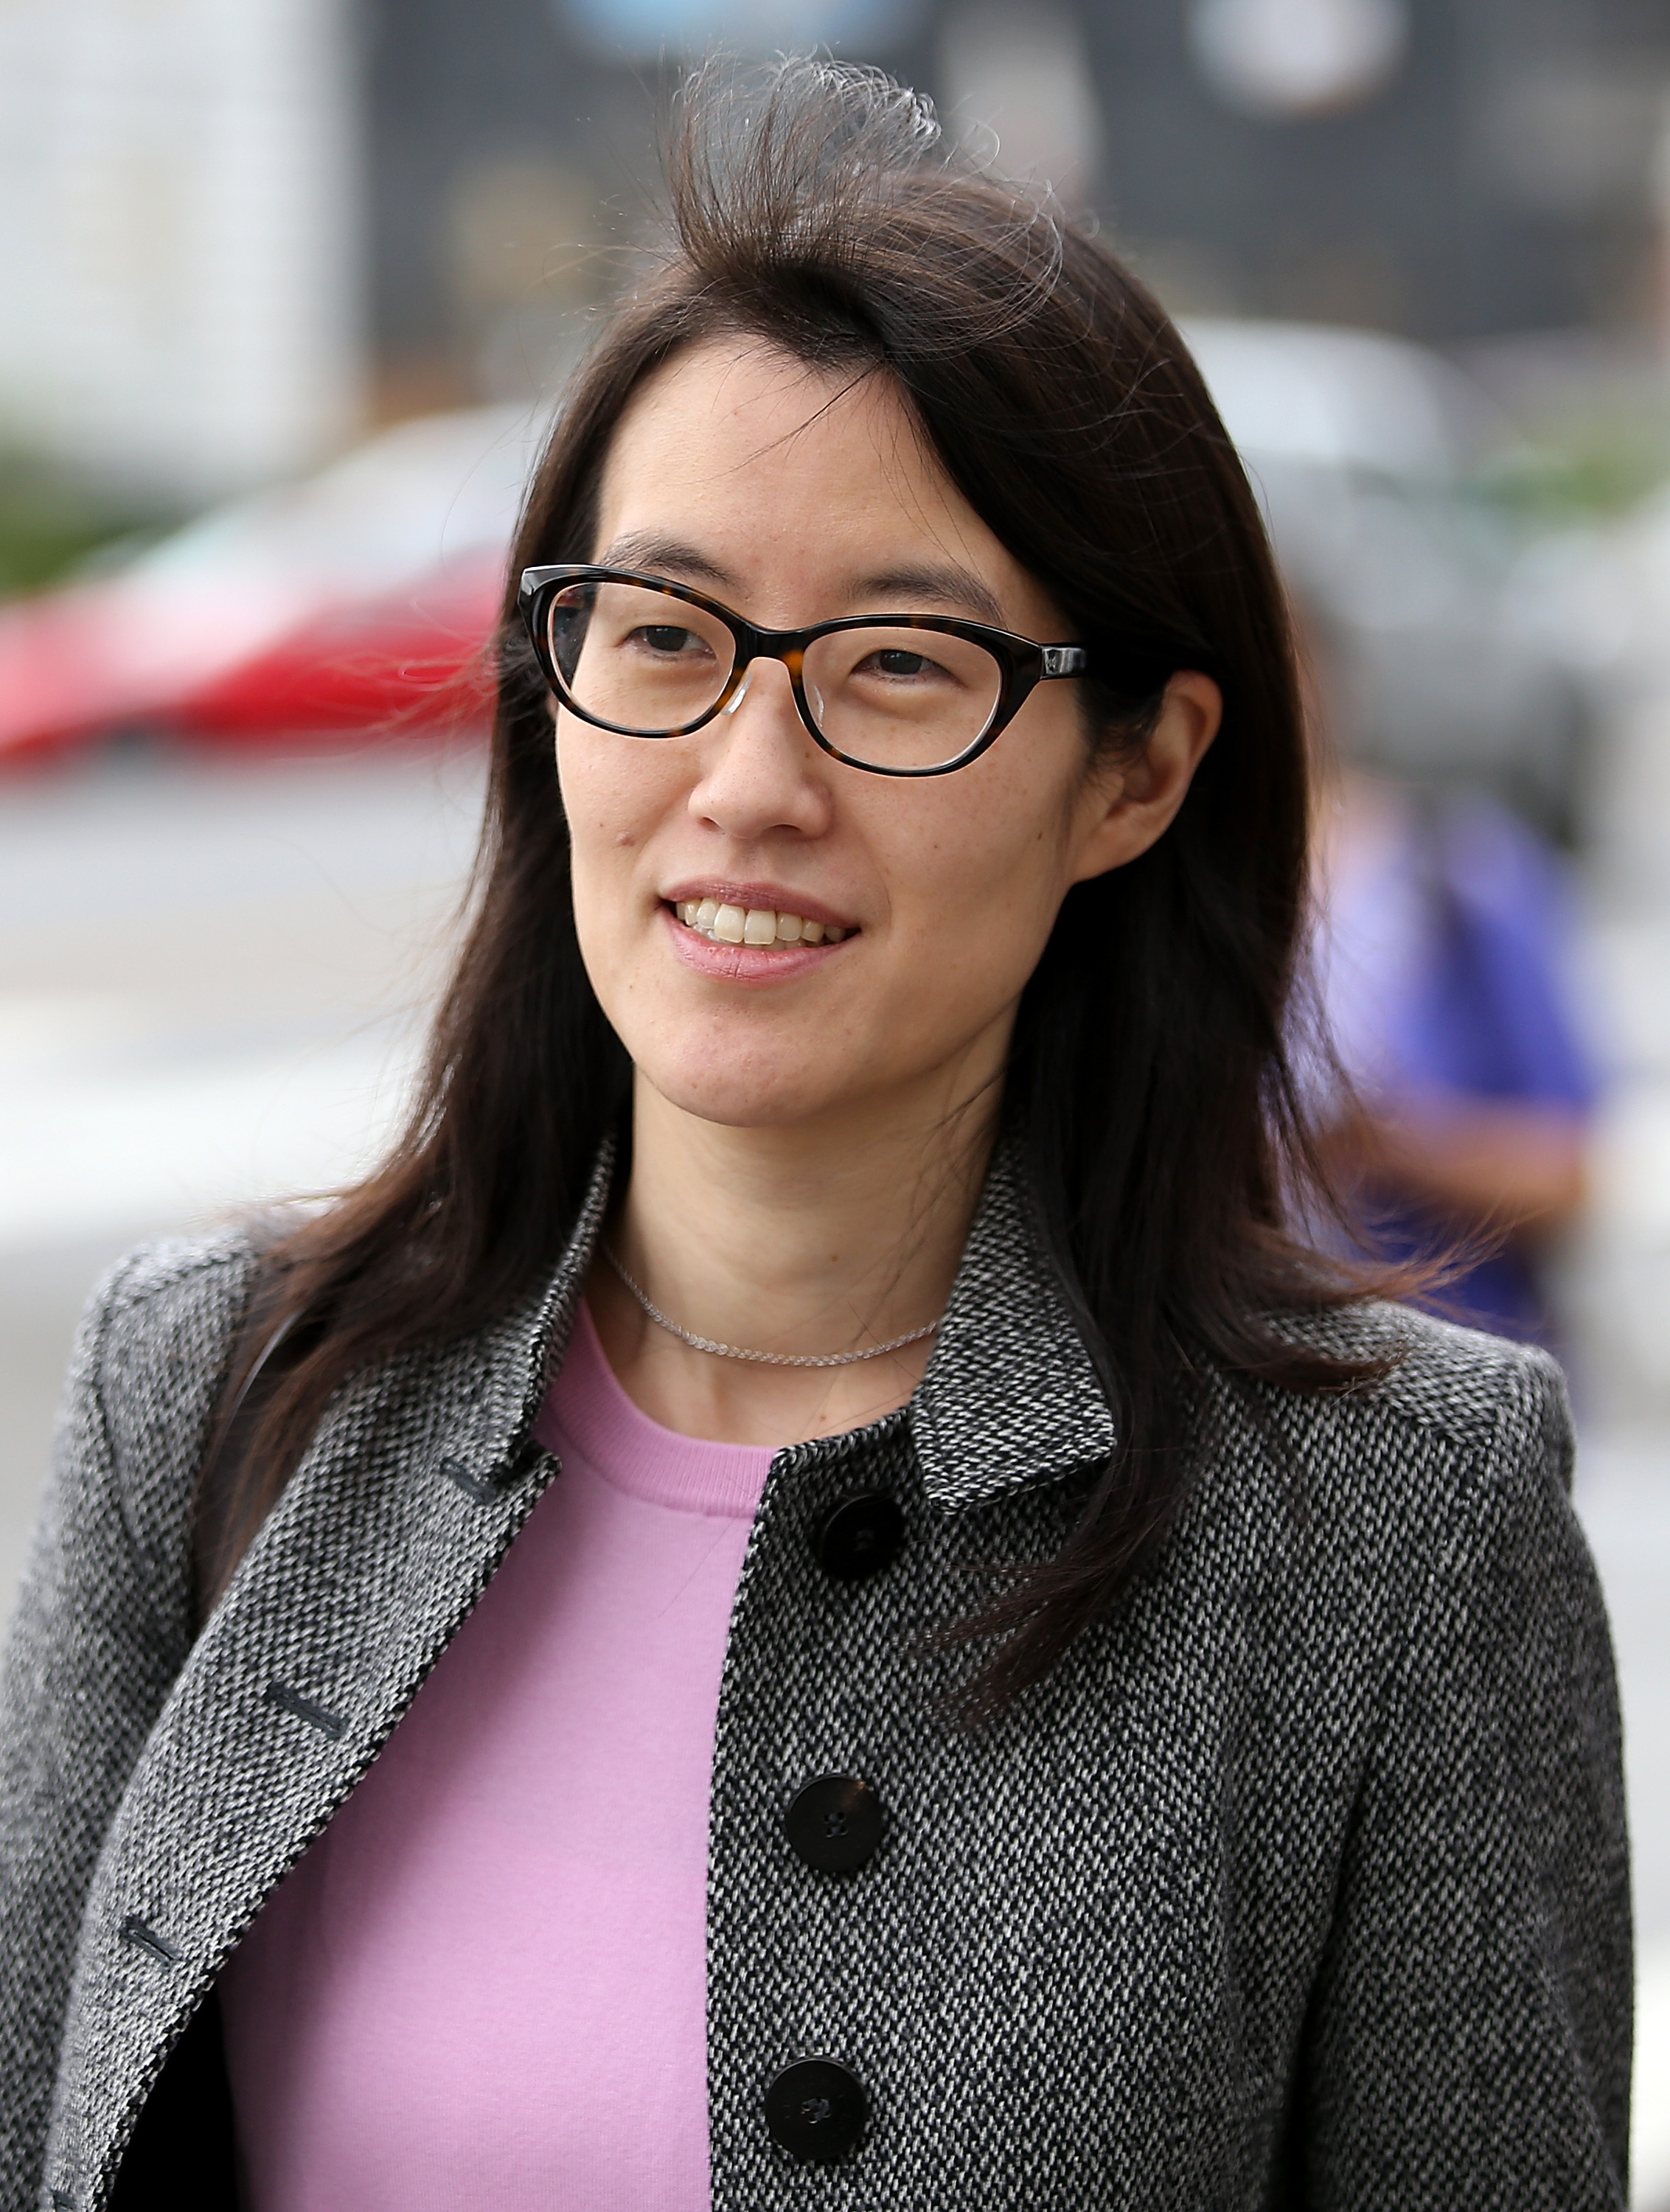 Reddit board member Sam Altman calls treatment of Ellen Pao 'sickening'